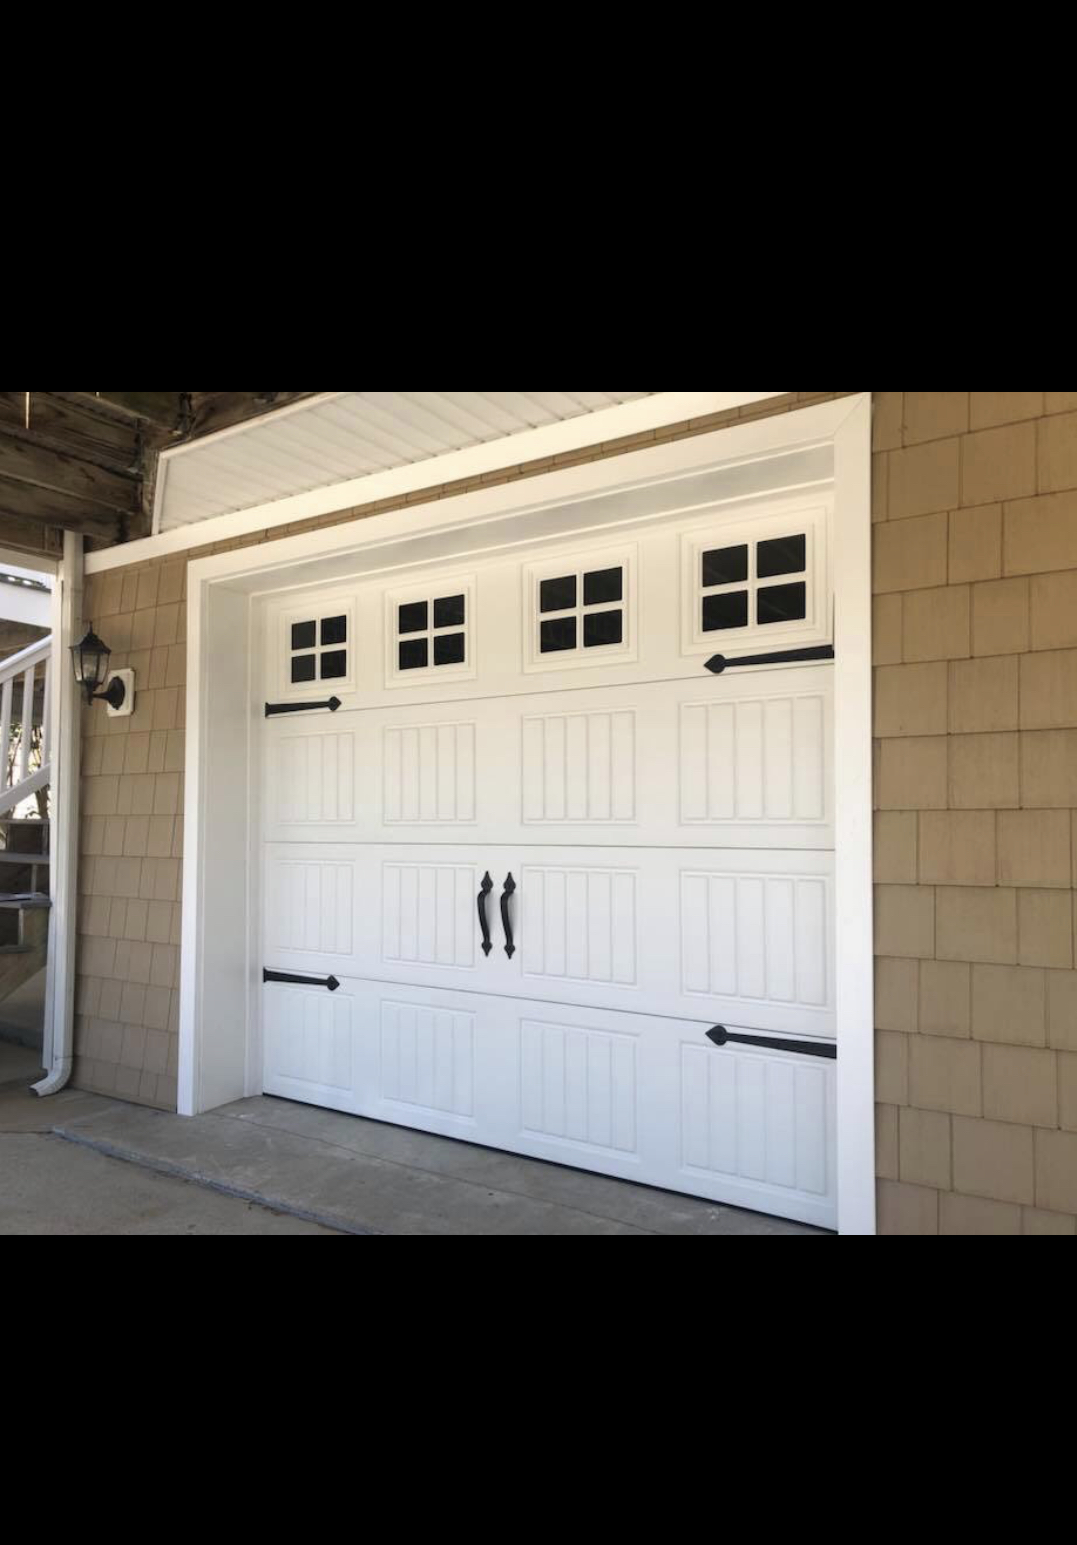 """""""Great family owned and operated business - really good people and professional in all regards.  Had a new insulted vinyl door installed on an attached garage which will help keep the house warm/cool, and the door is sturdy and secure which is great for the storms that hit us.  Never thought I would be so happy about a new garage door.  Thanks!""""  -M K"""